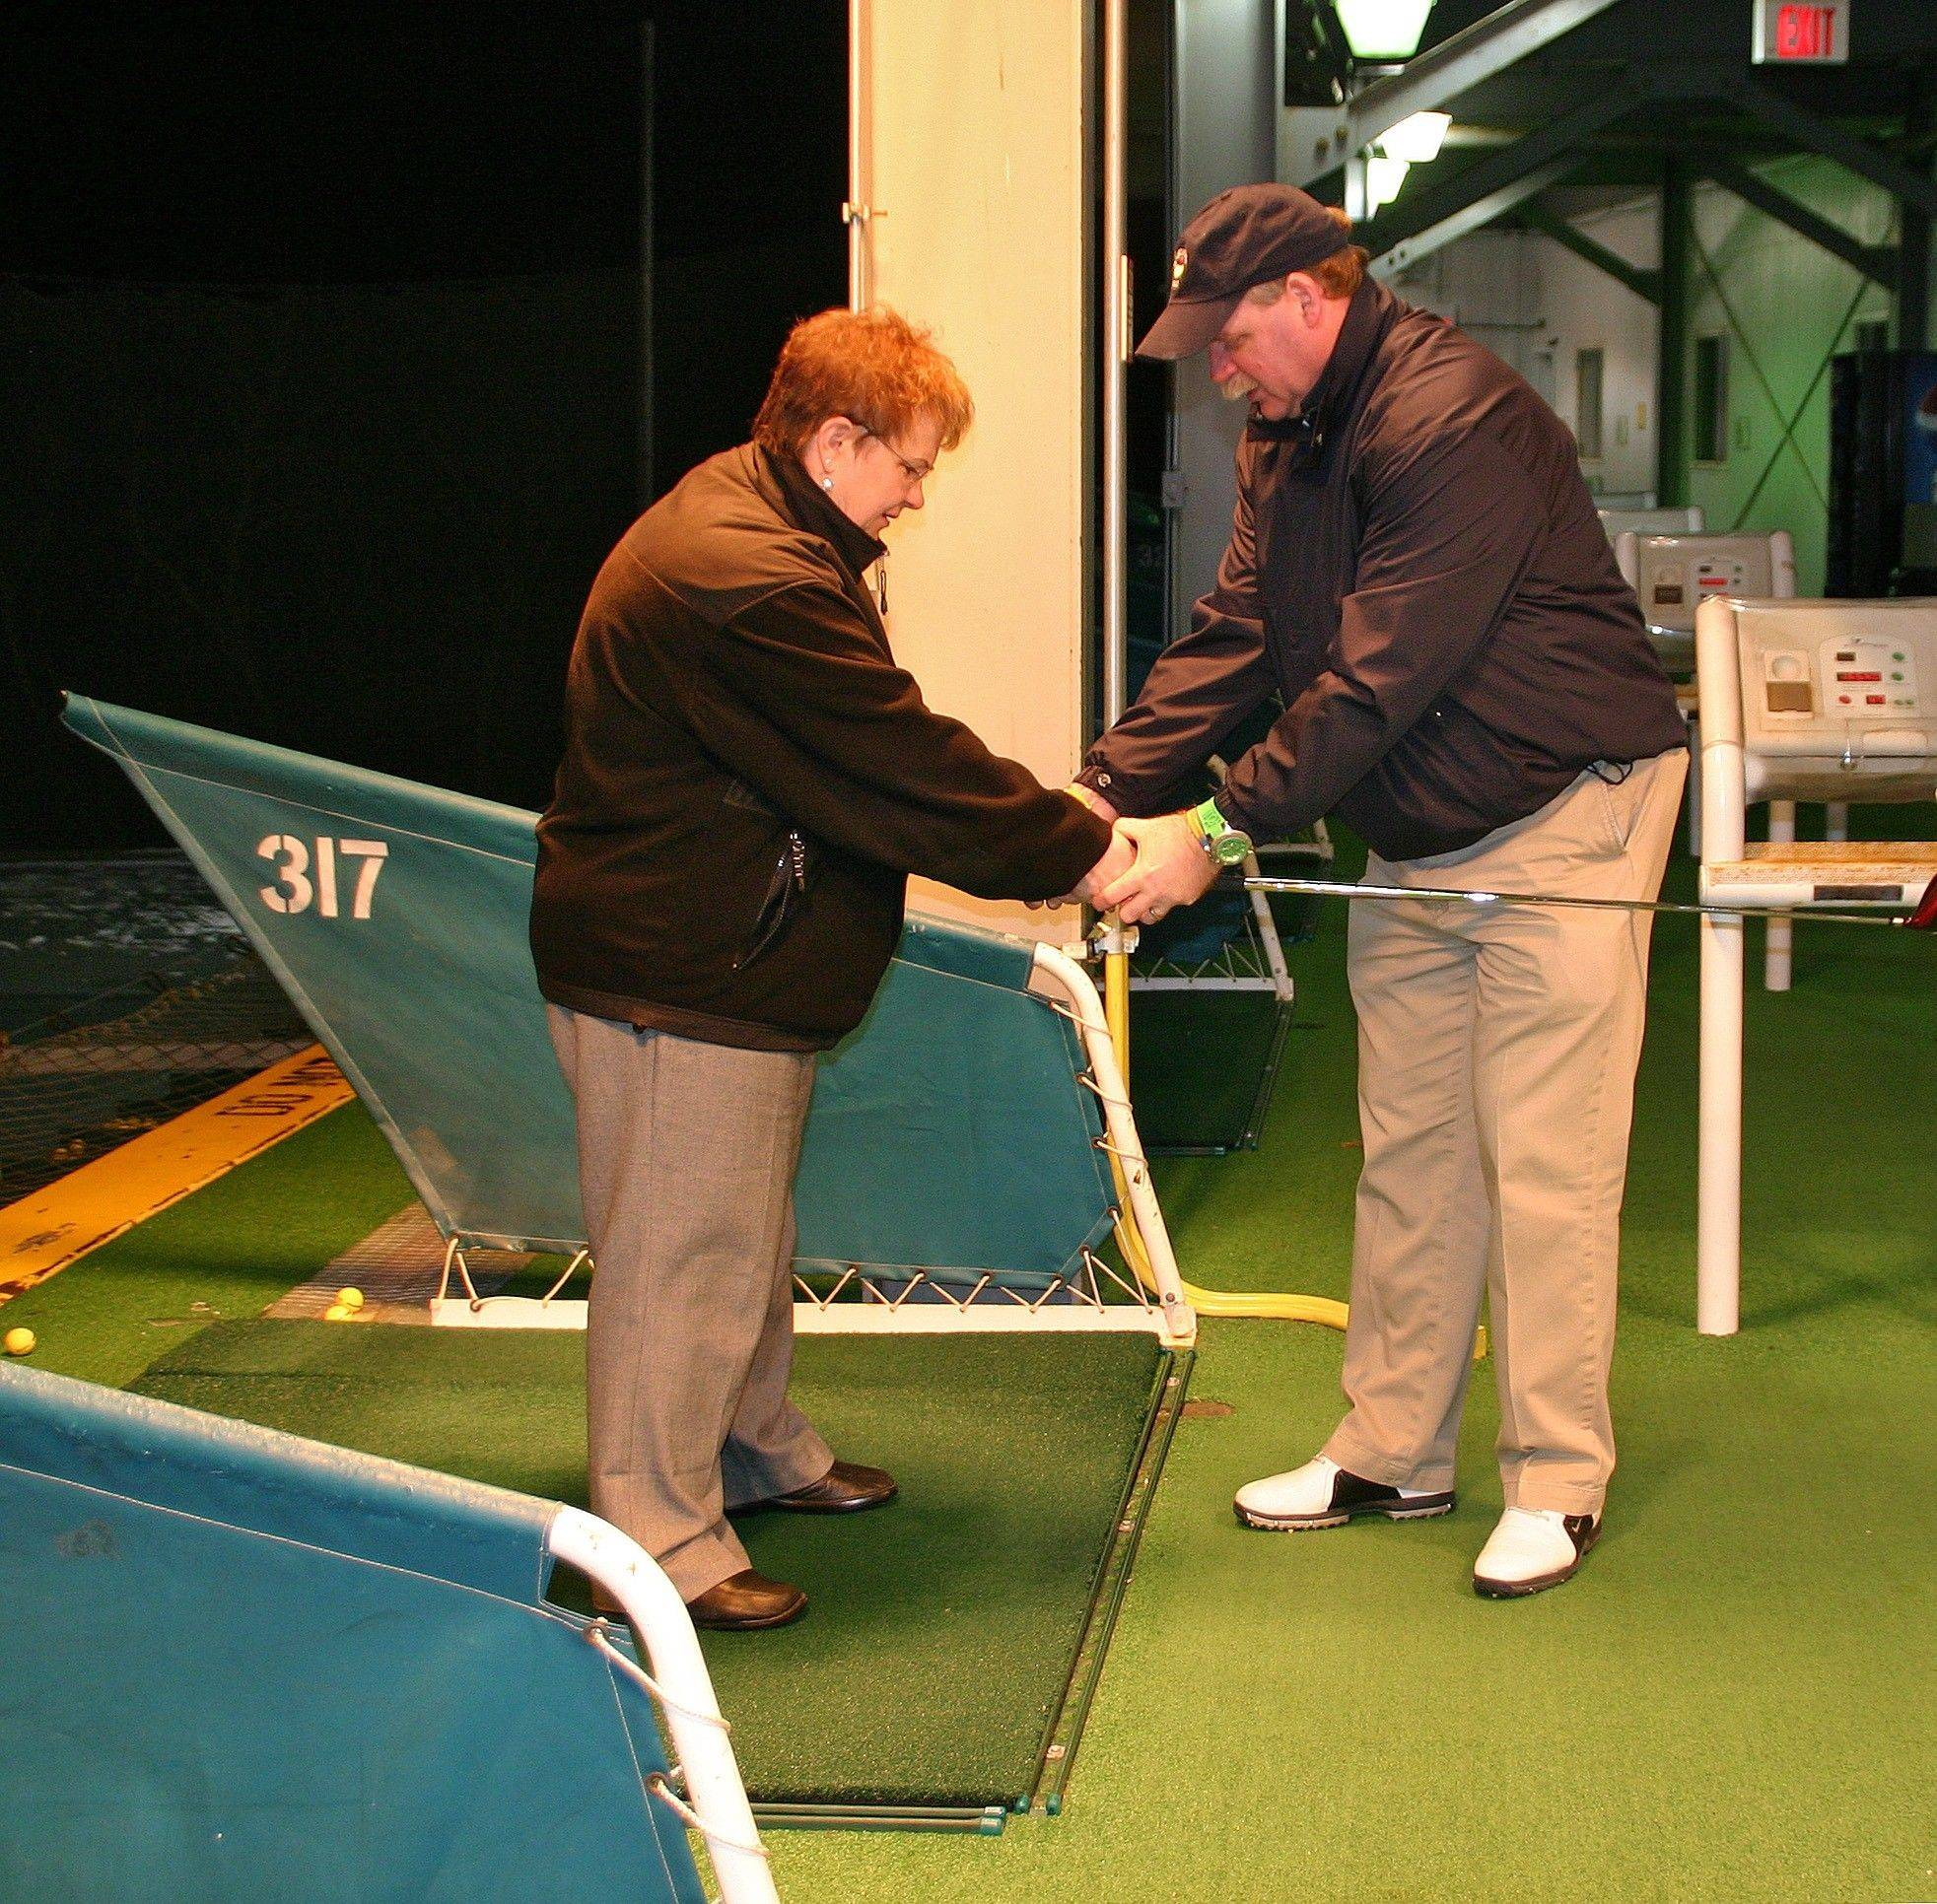 Des Plaines City Clerk Gloria Ludwig gets some grip tips from GolfTEC pro Tom Portera at the Feb. 24 Ladies Night at Golf Center Des Plaines.